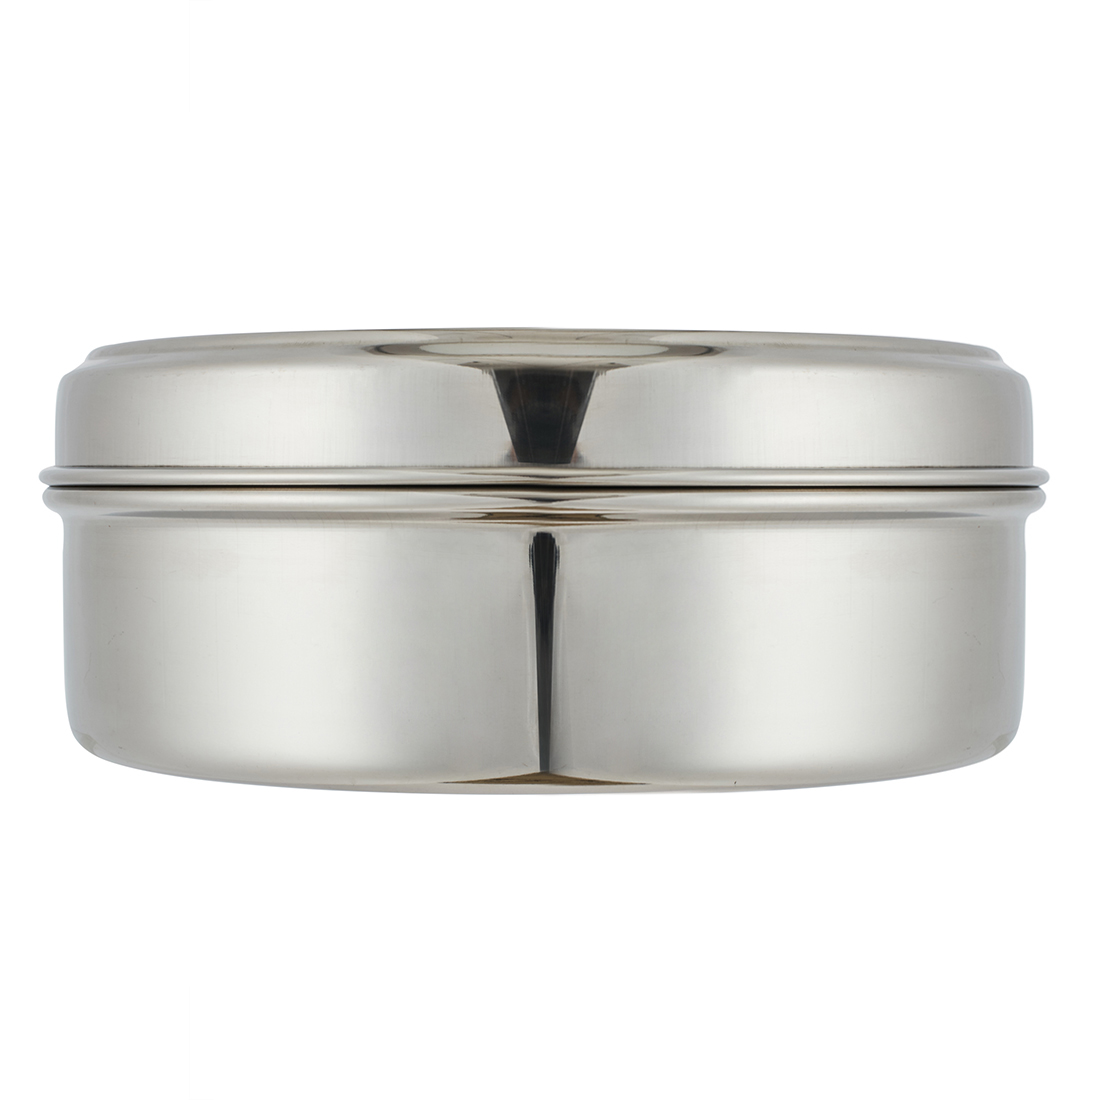 Puri Dabba Stainless steel Containers in Silver Colour by Living Essence